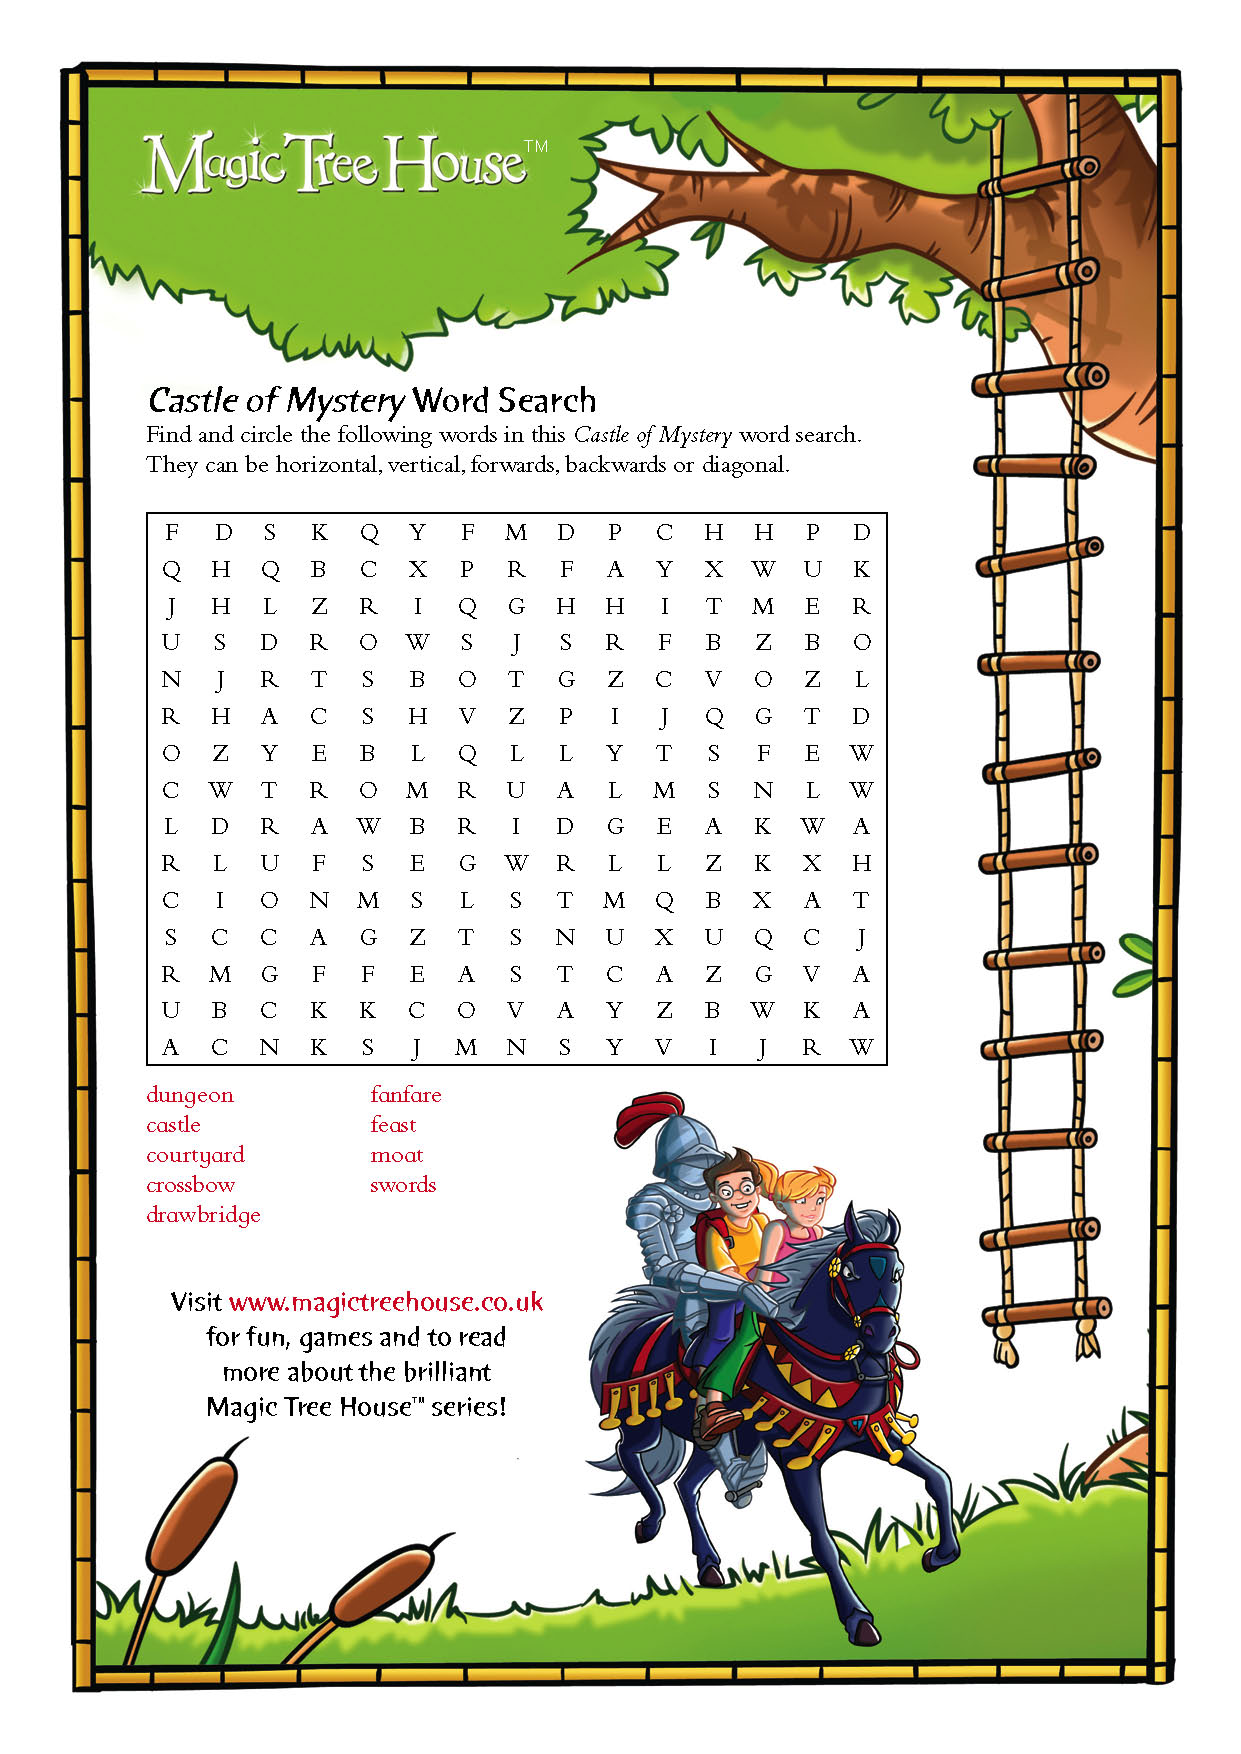 Magic Tree House Wordsearch